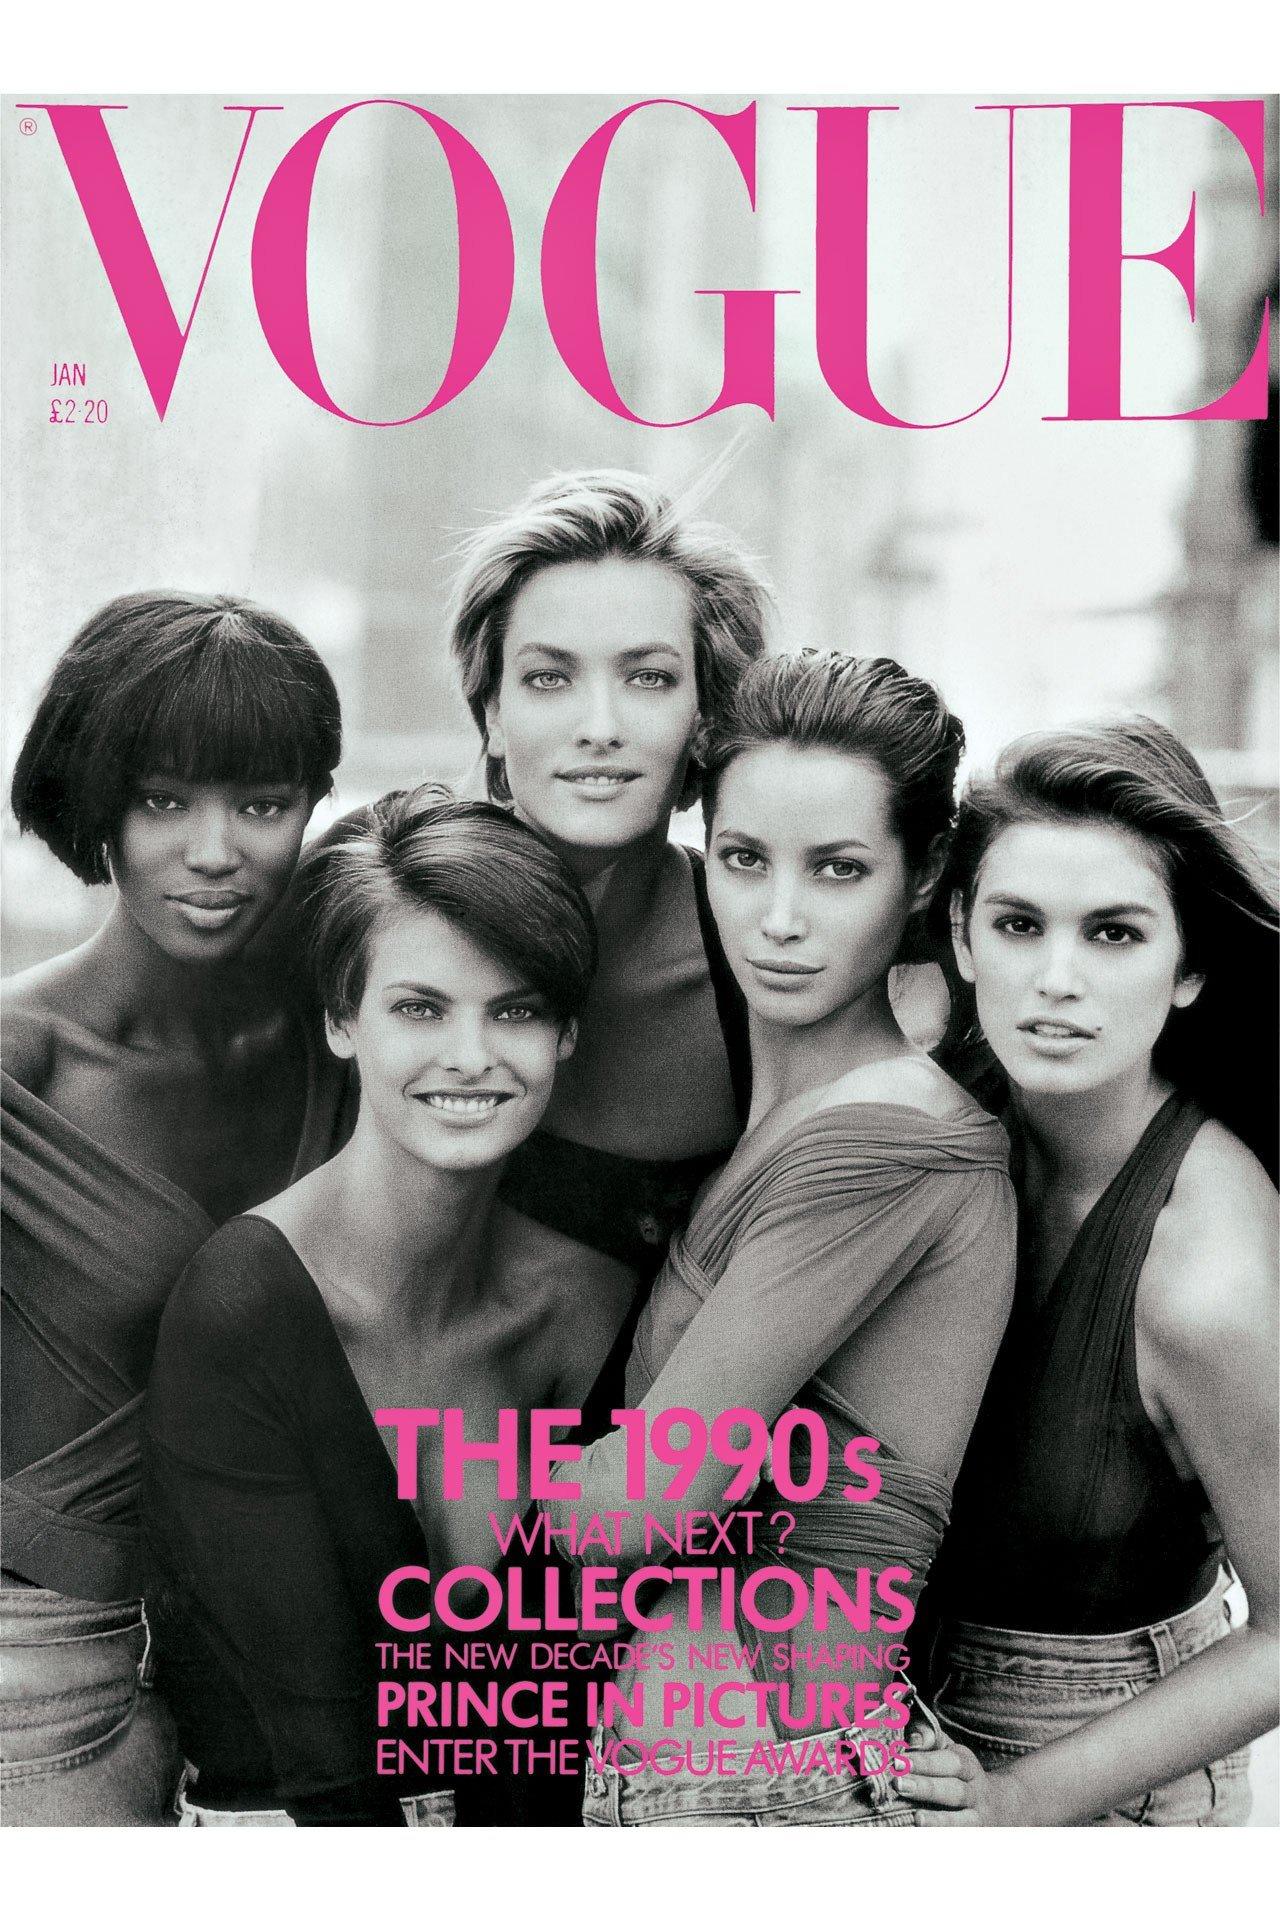 jan90-vogue-cover-1280